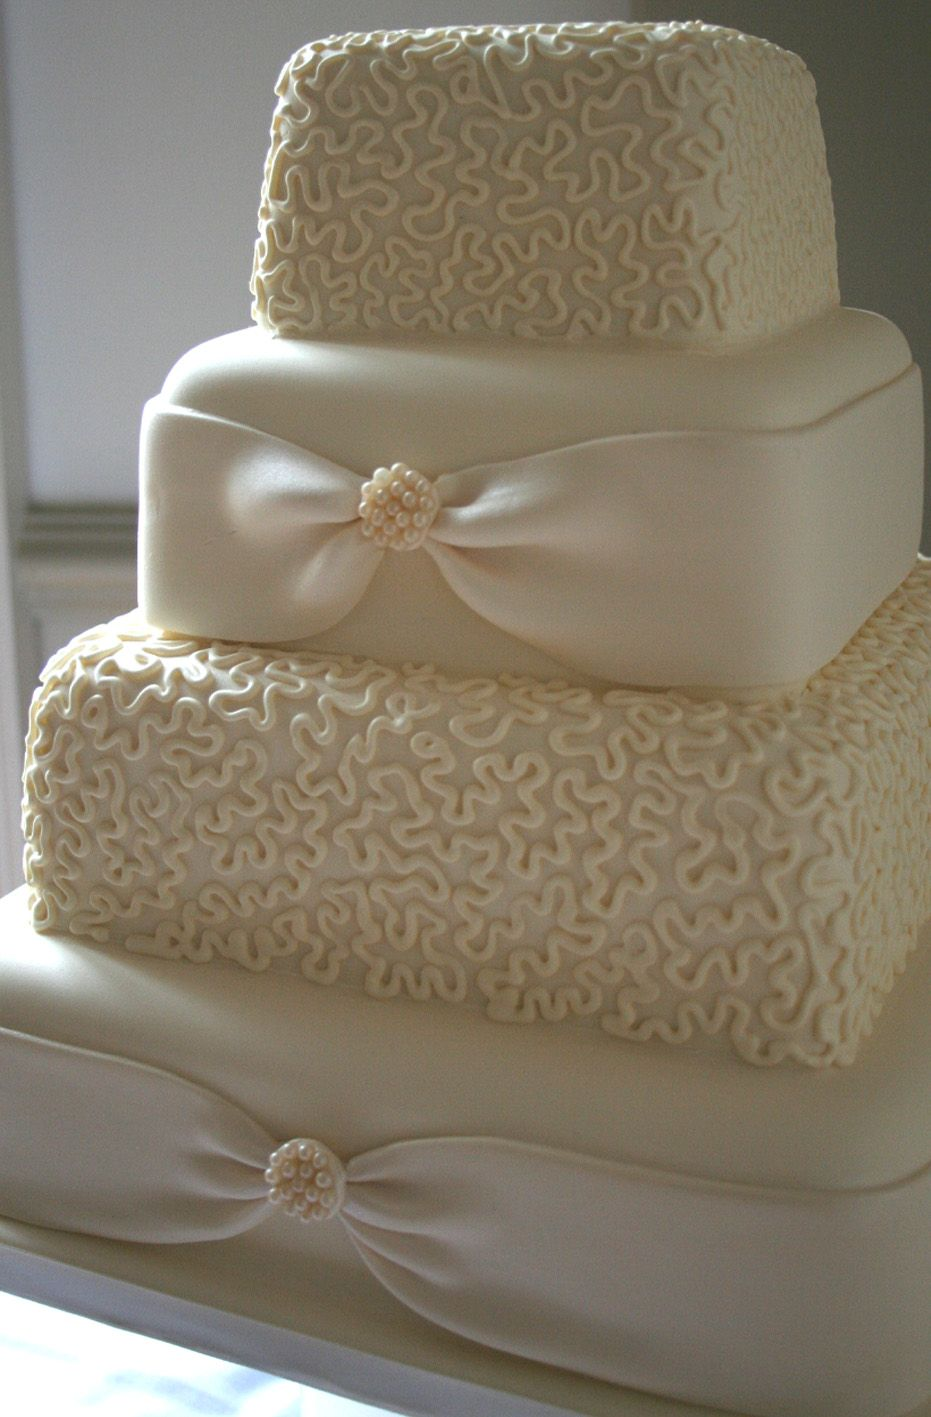 chantilly lace cake